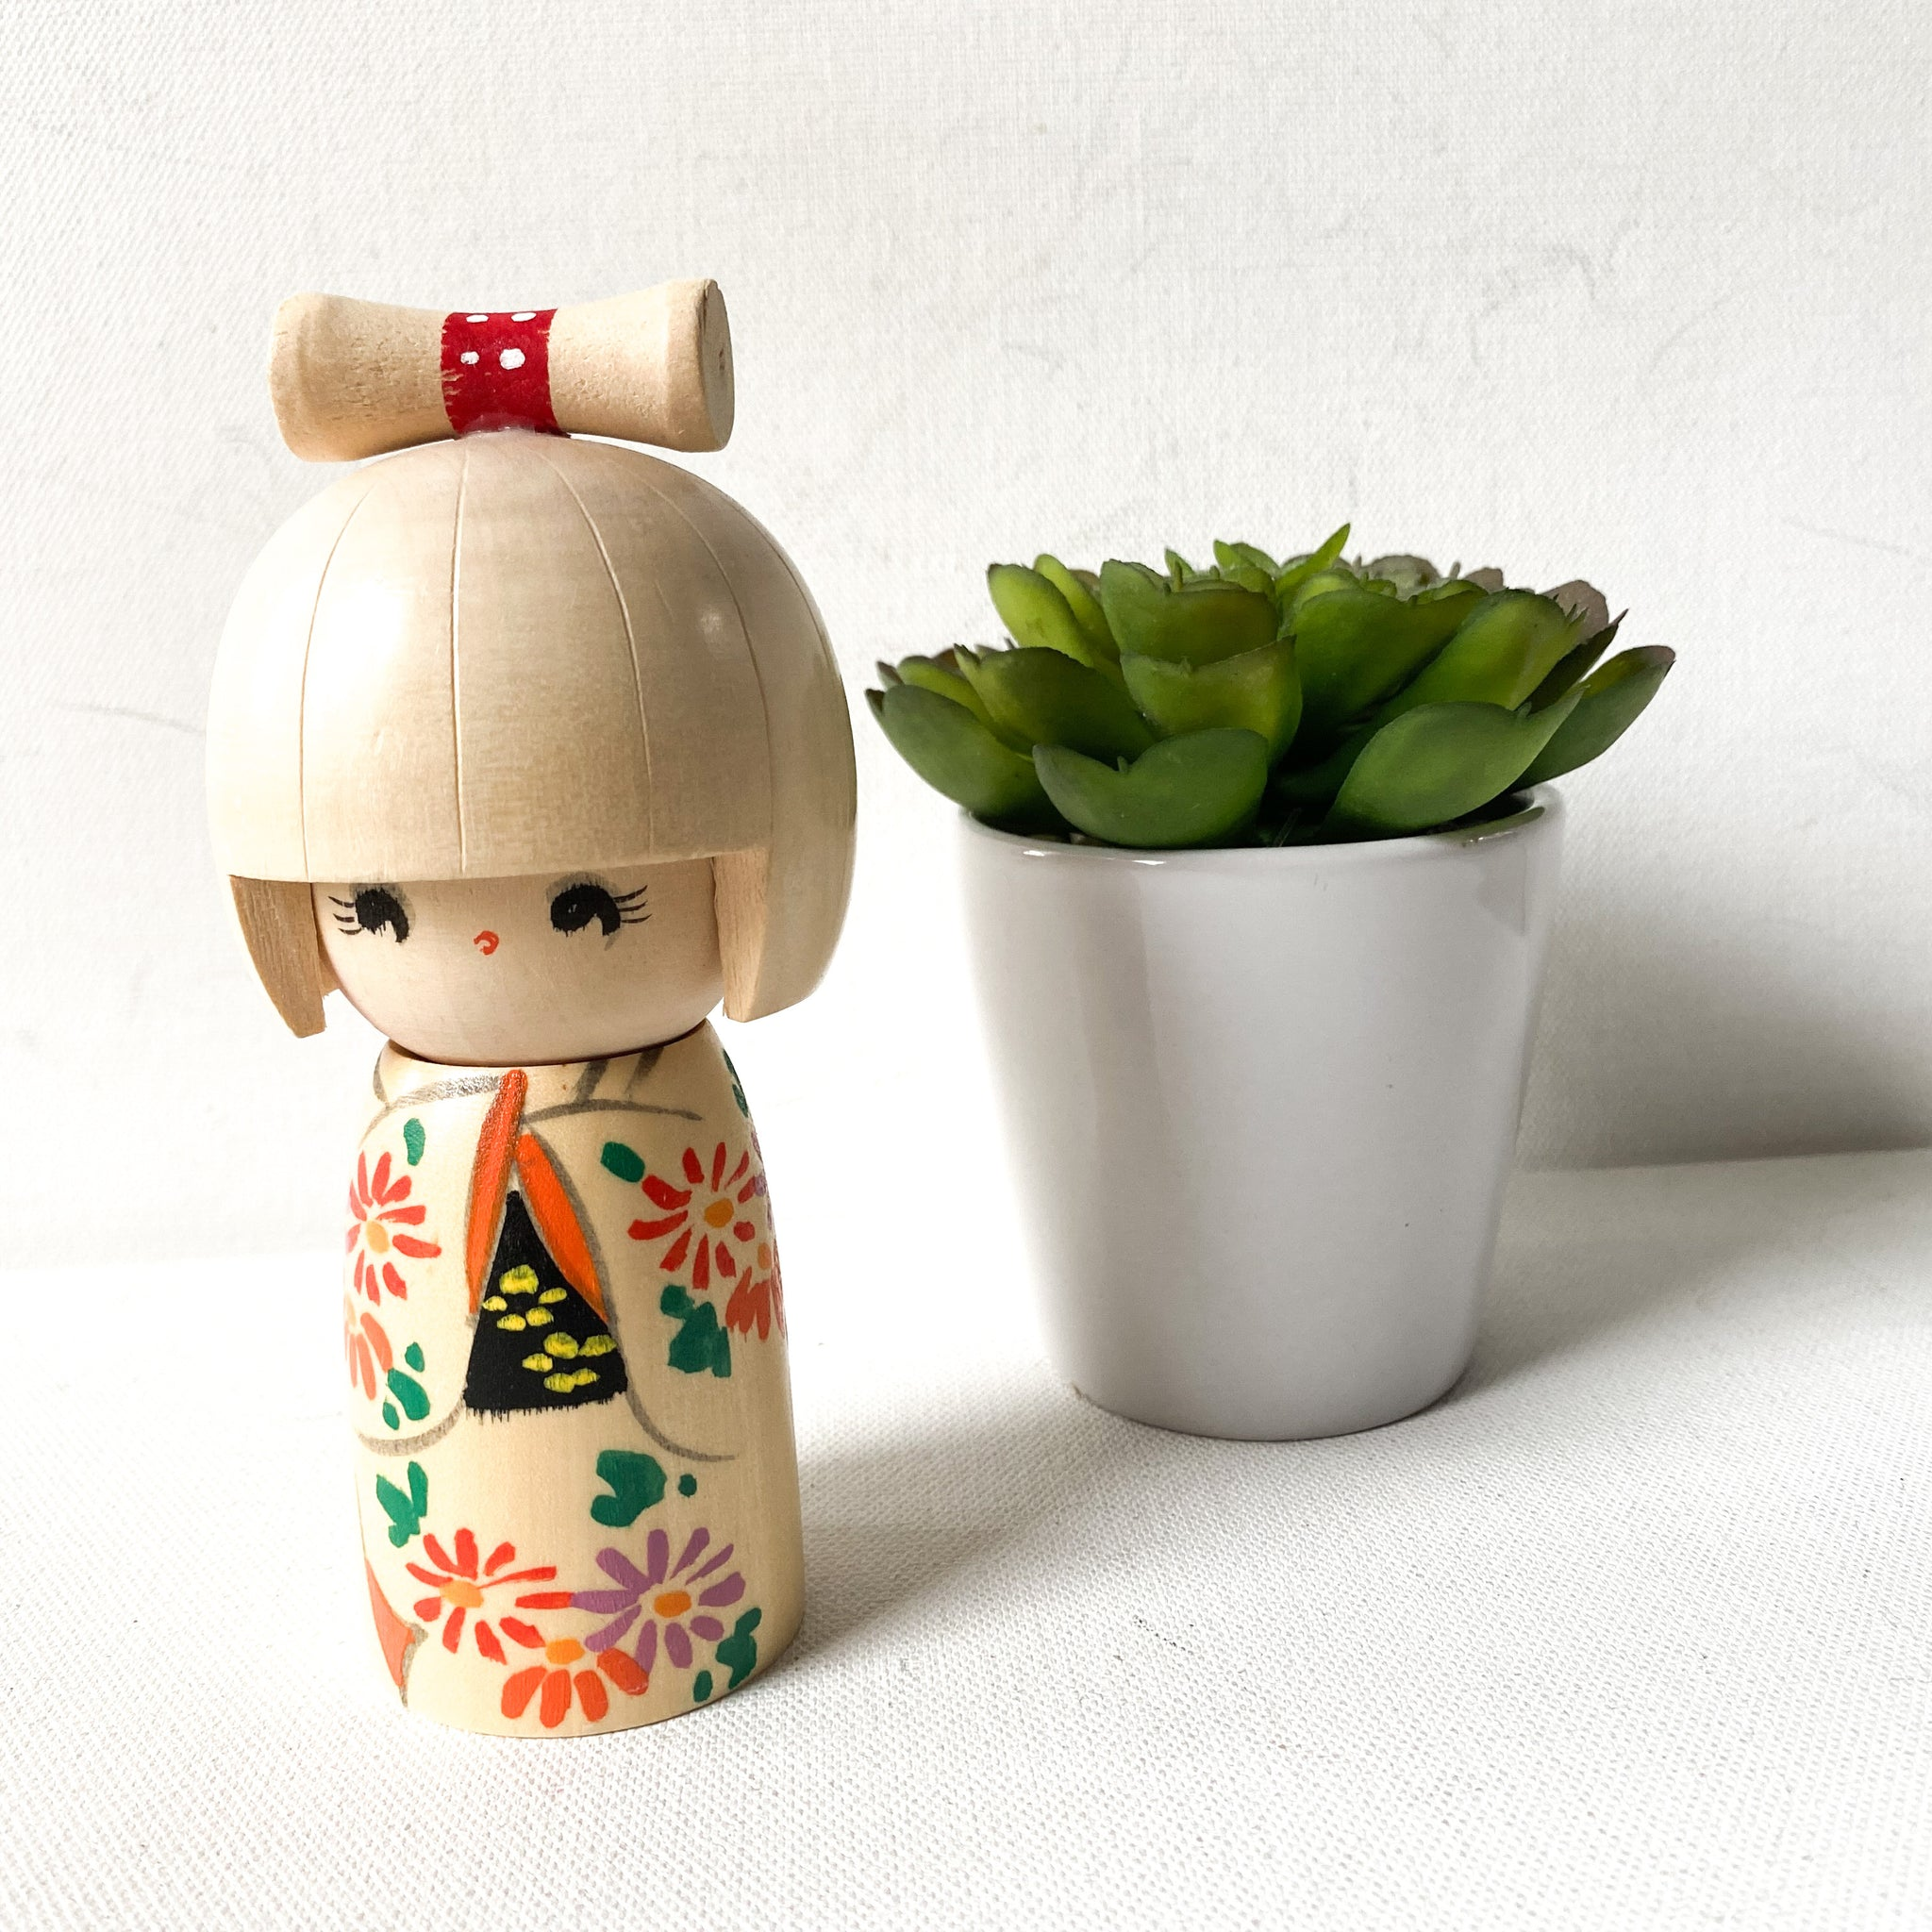 Vintage Japanese Kokeshi Collectible Doll, Painted Wood